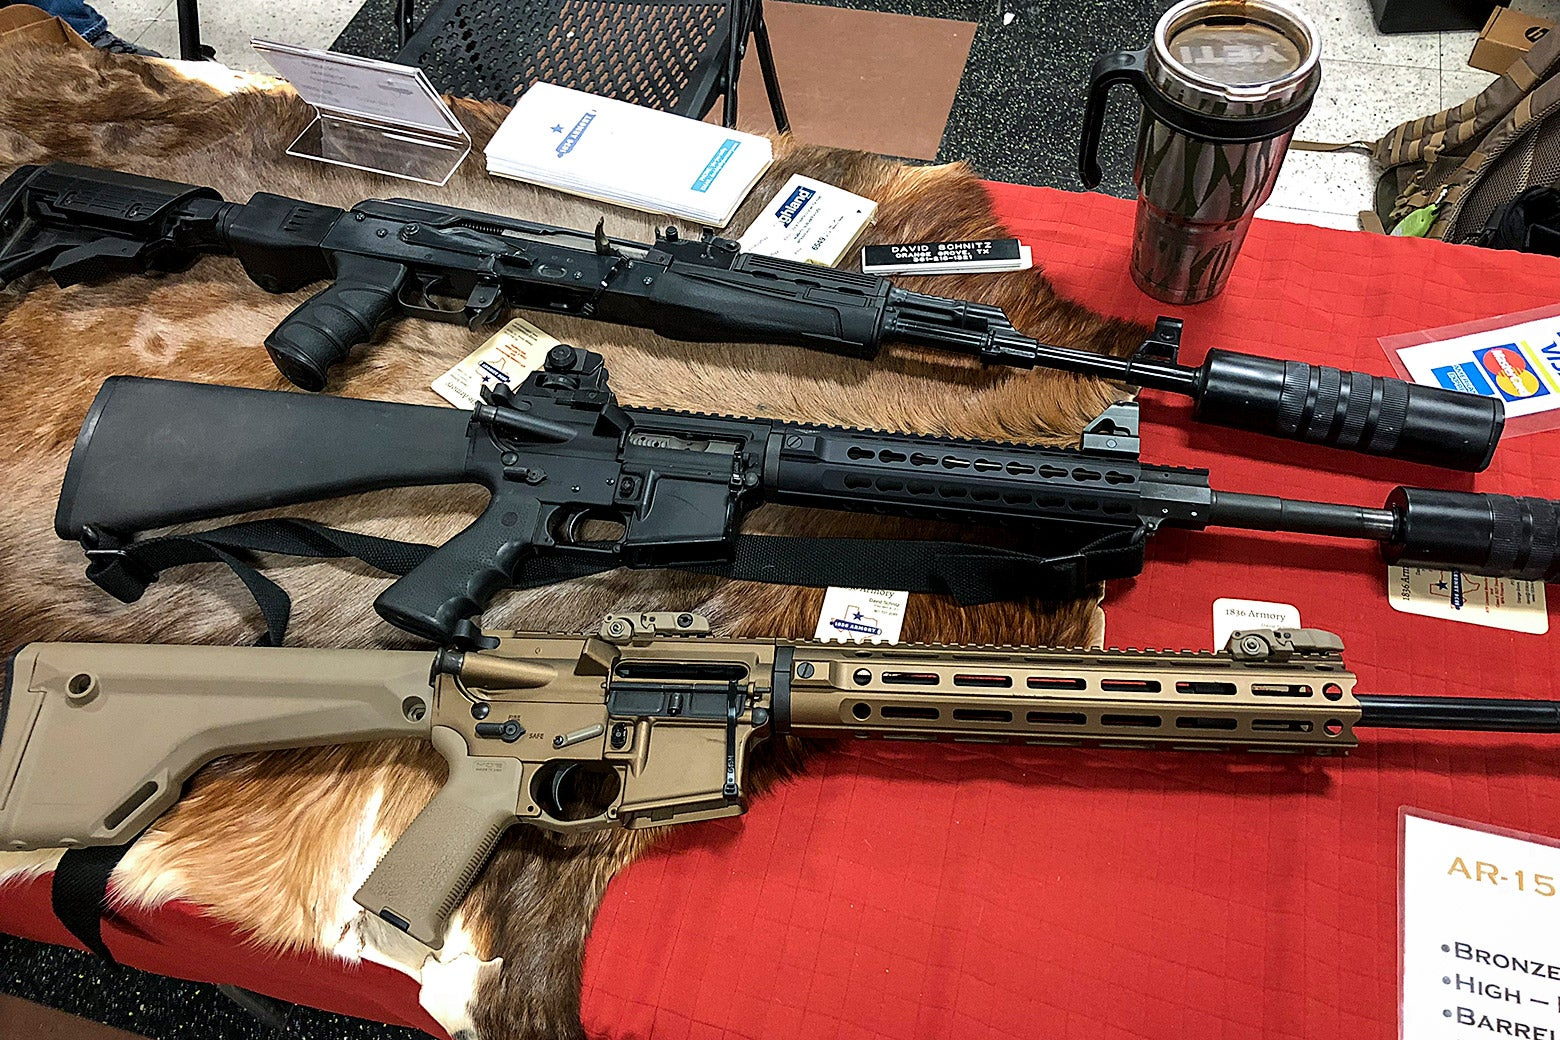 Rifles at a gun show